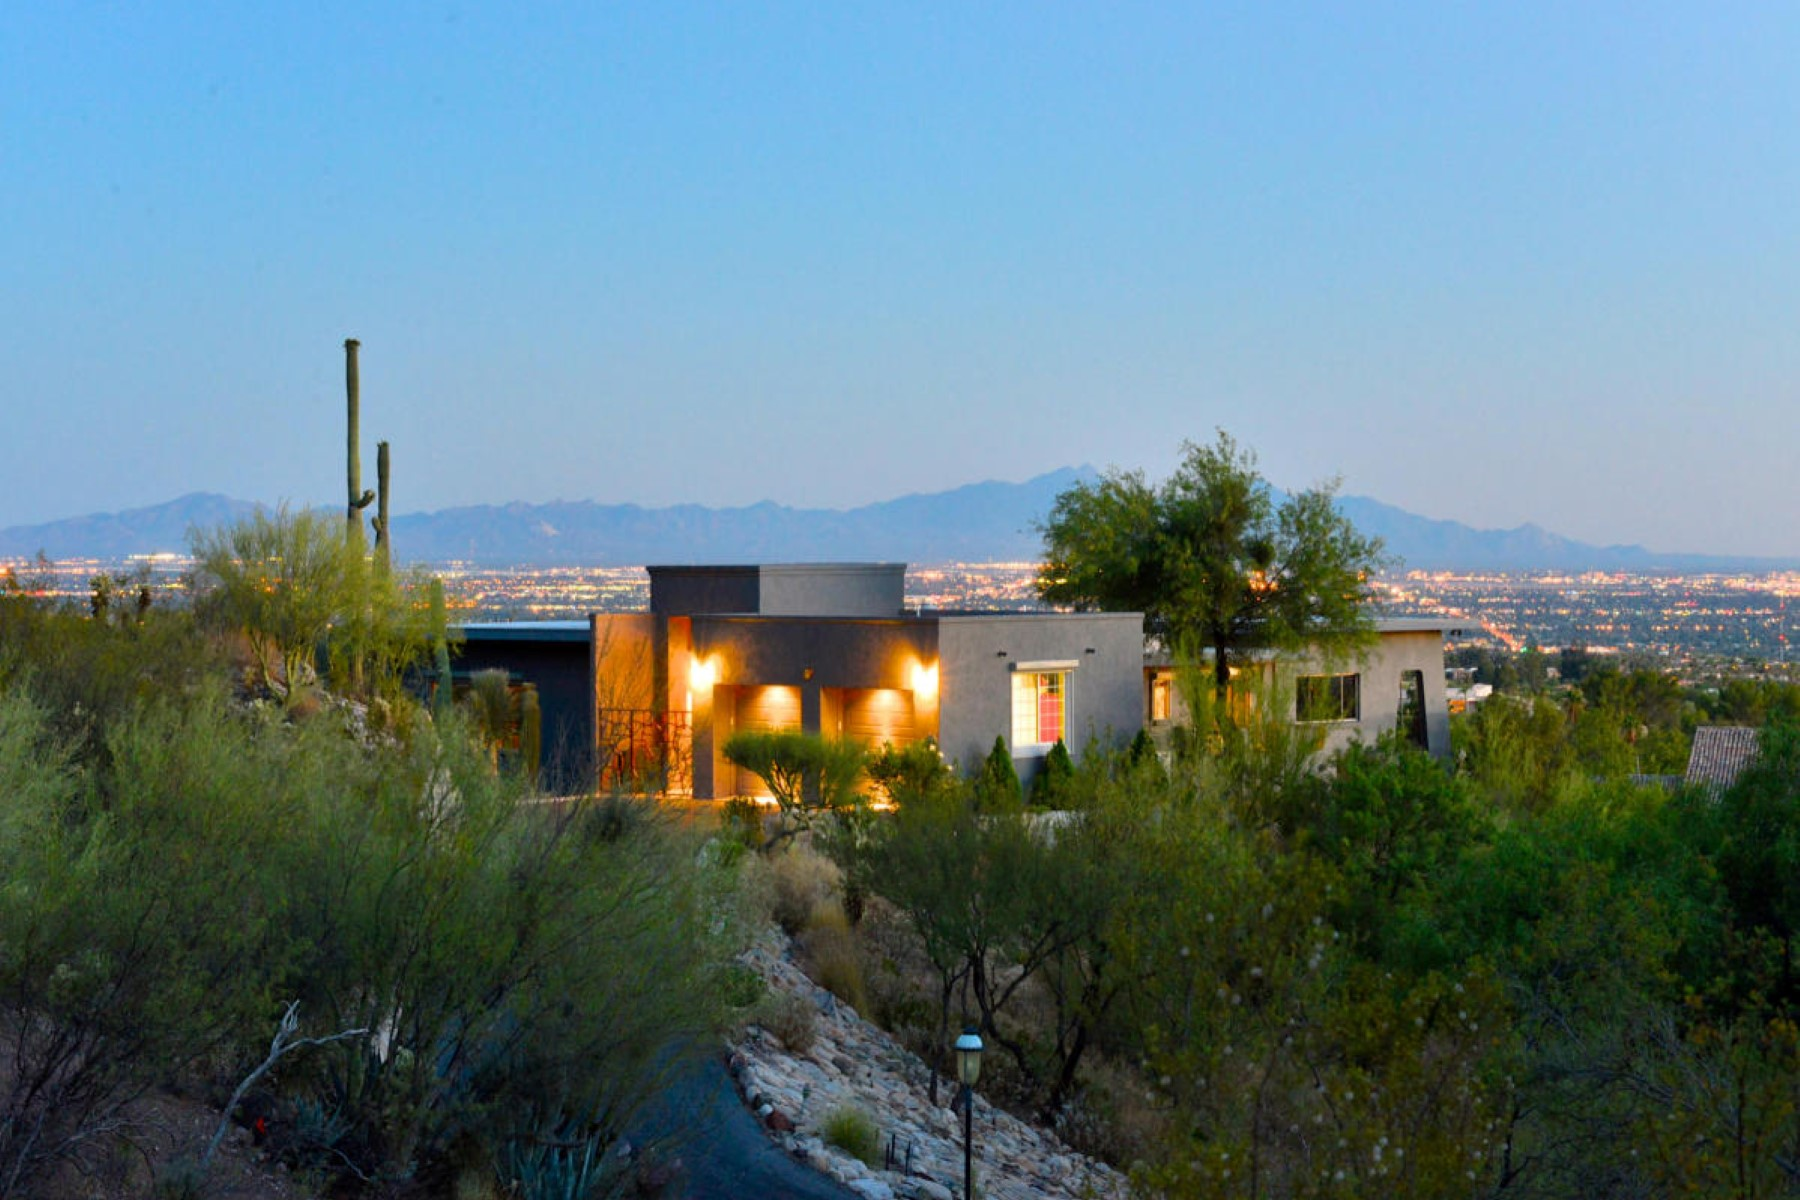 Moradia para Venda às Extraordinary modern contemporary home with spectacular city views. 4940 E Winged Foot Drive Tucson, Arizona 85718 Estados Unidos